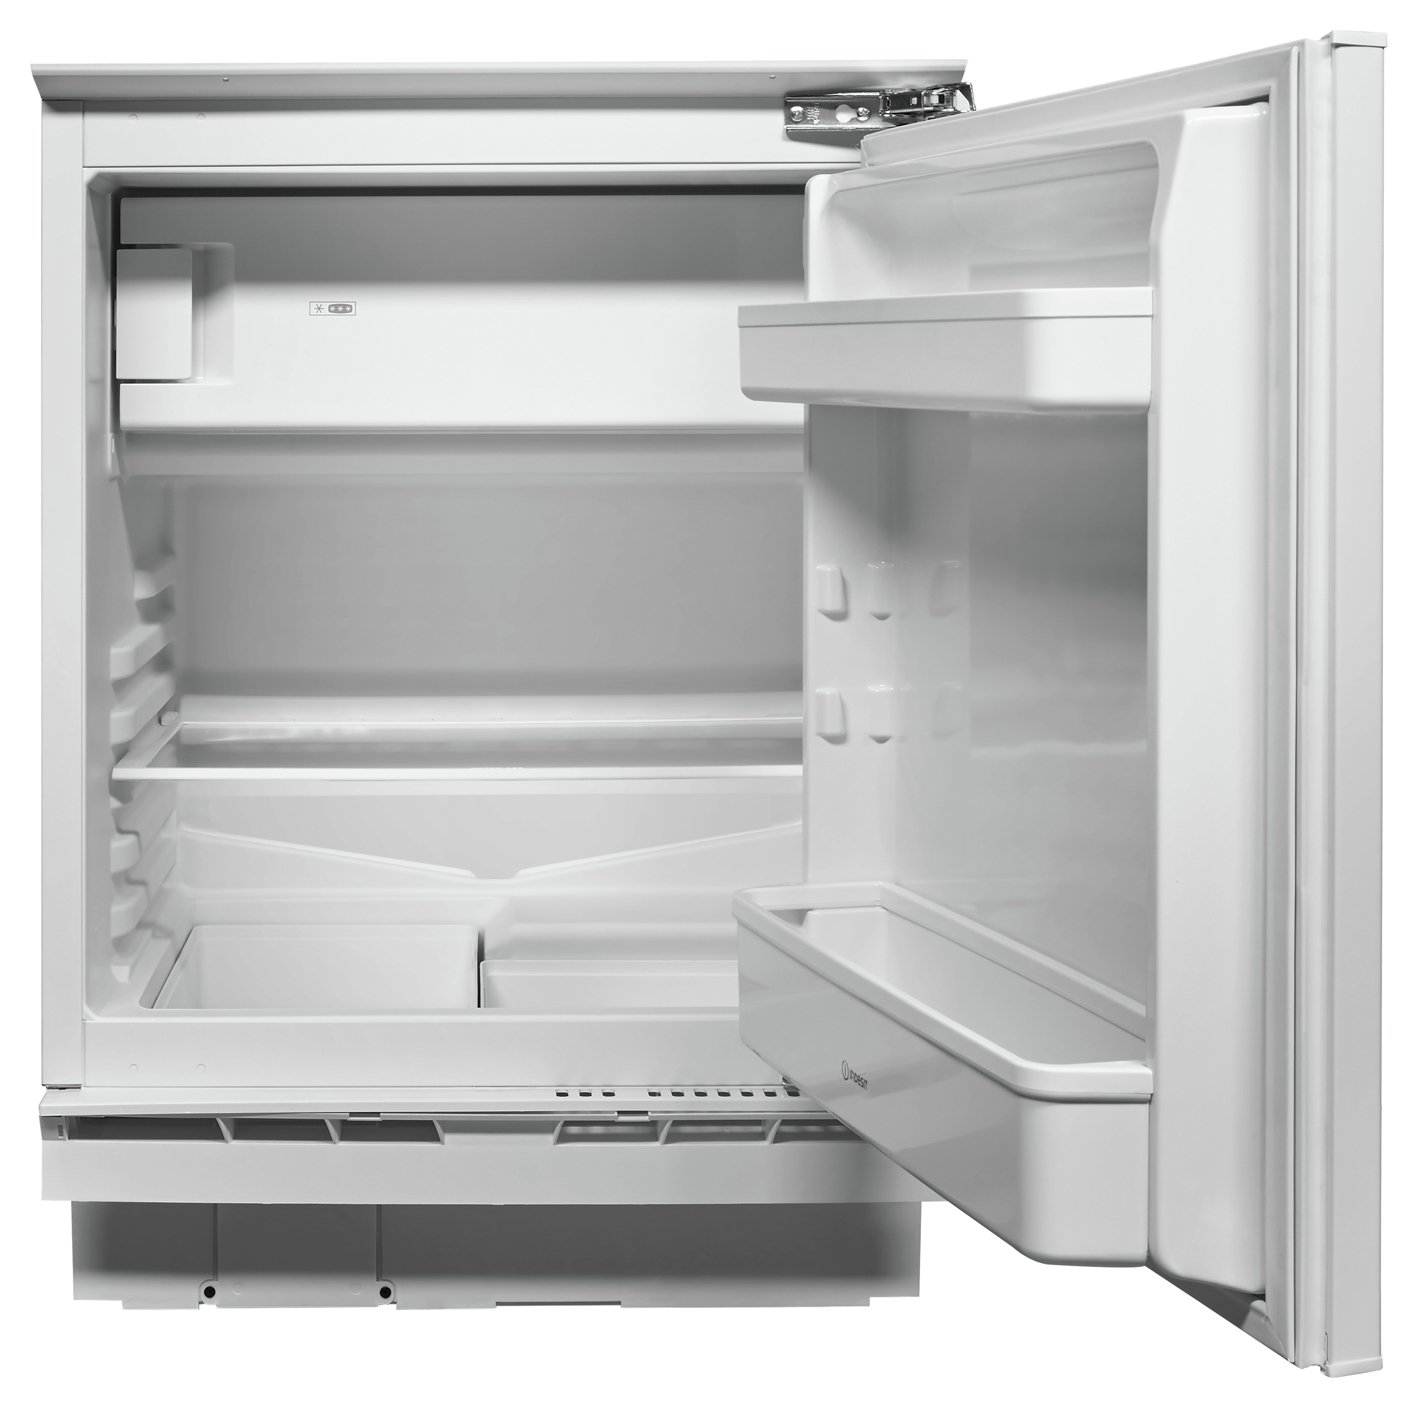 Indesit IFA1 60cm Wide Integrated Under Counter Fridge - White Best Price and Cheapest